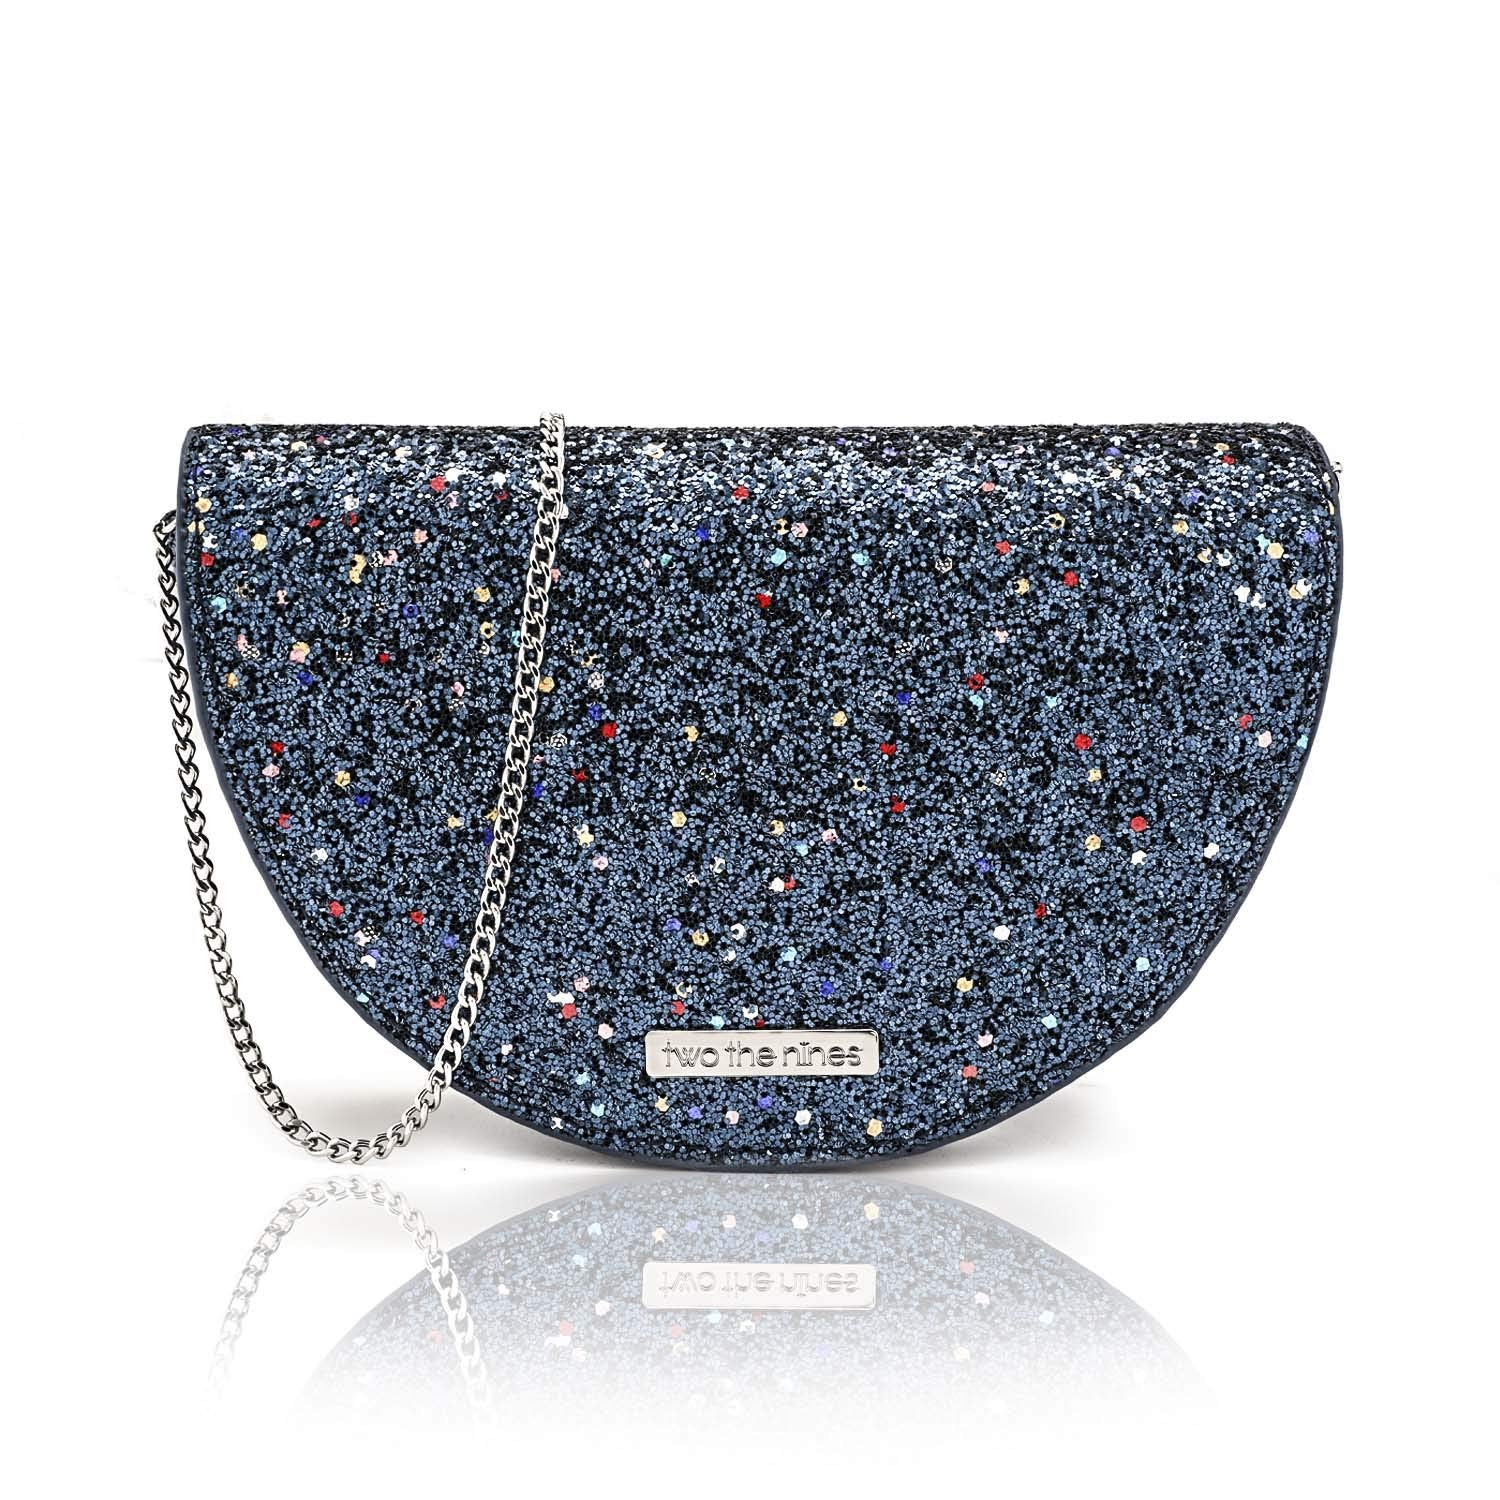 Bling Round Clutch